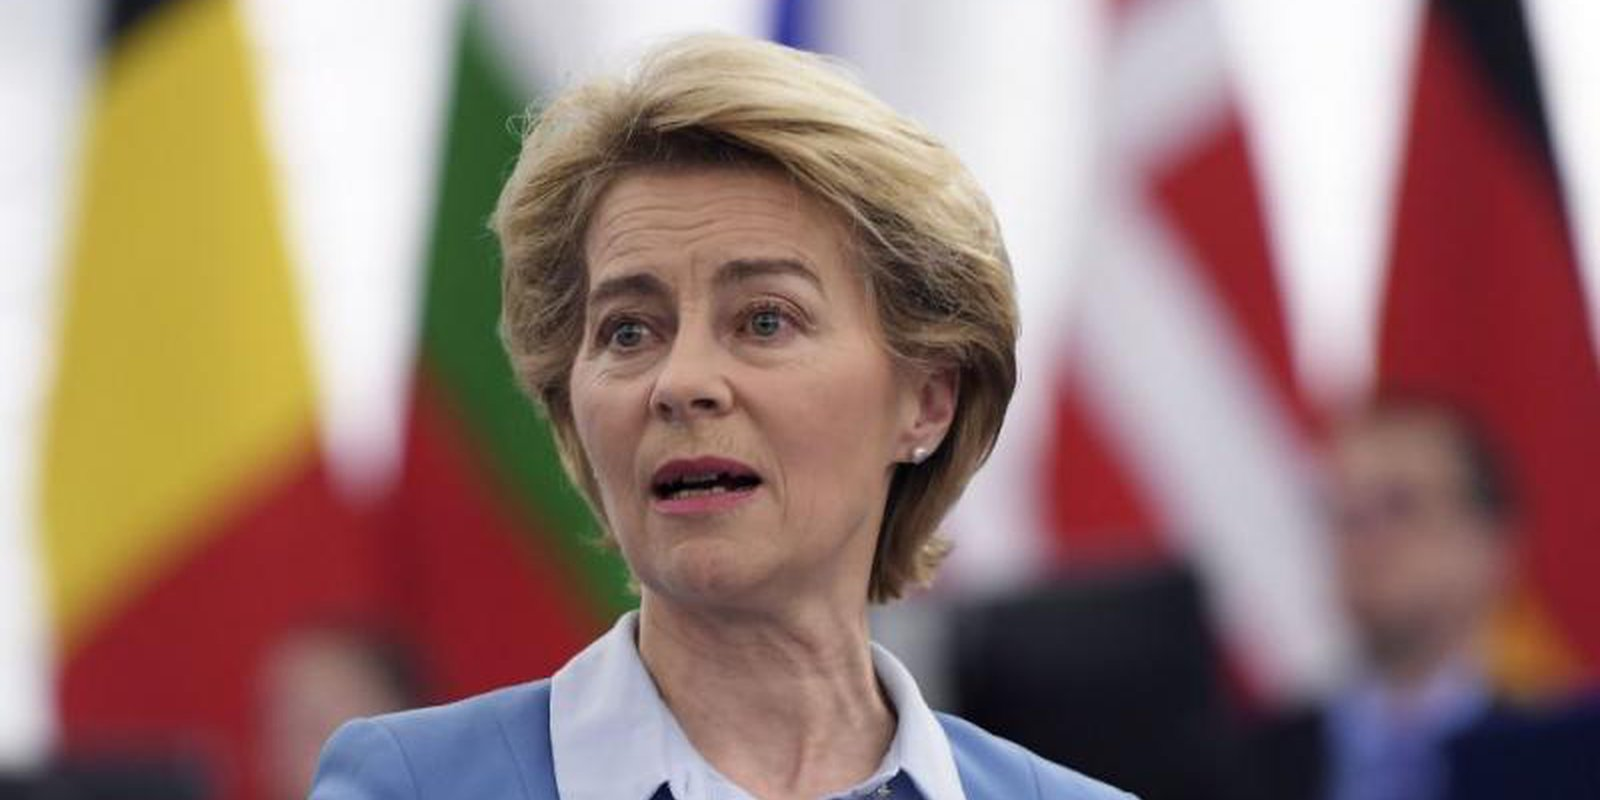 EU Commission President Ursula von der Leyen speaks at the European Parliament in Strasbourg in February. Photo: Getty Images.